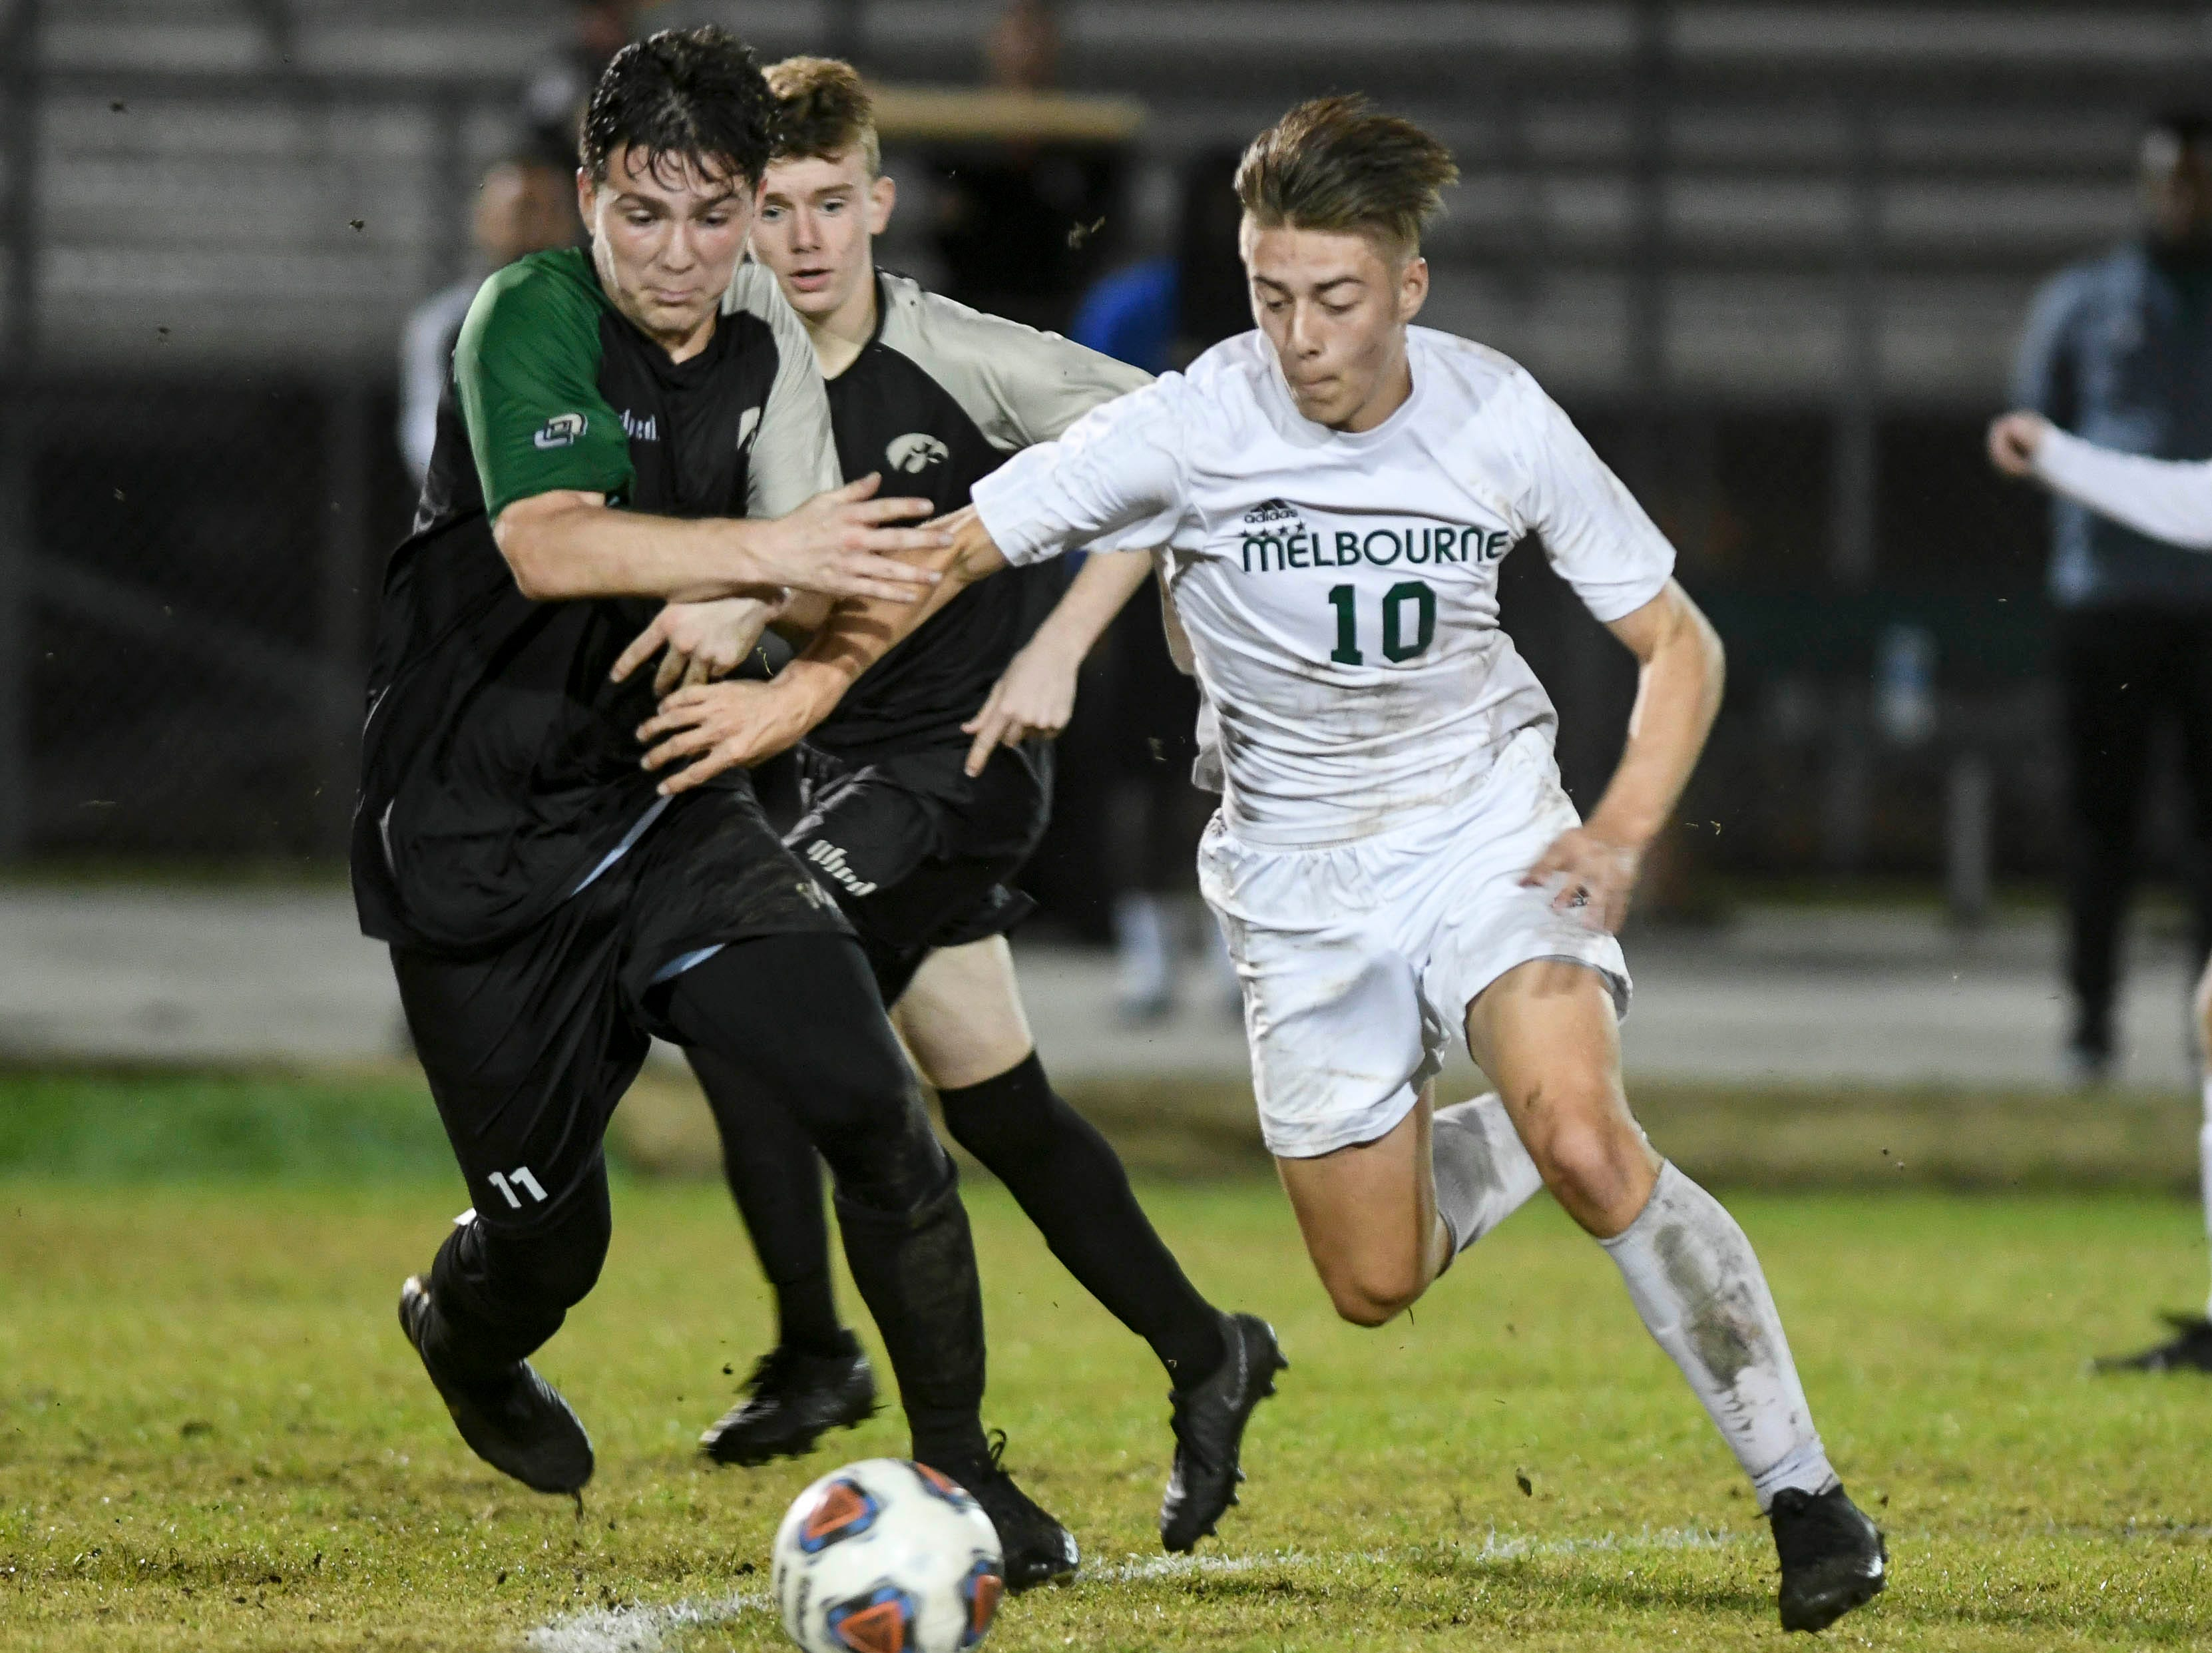 Christian Becerra of Viera and Aden O'Hara of Melbourne fight for the ball during Friday 's district championship game at Viera High.